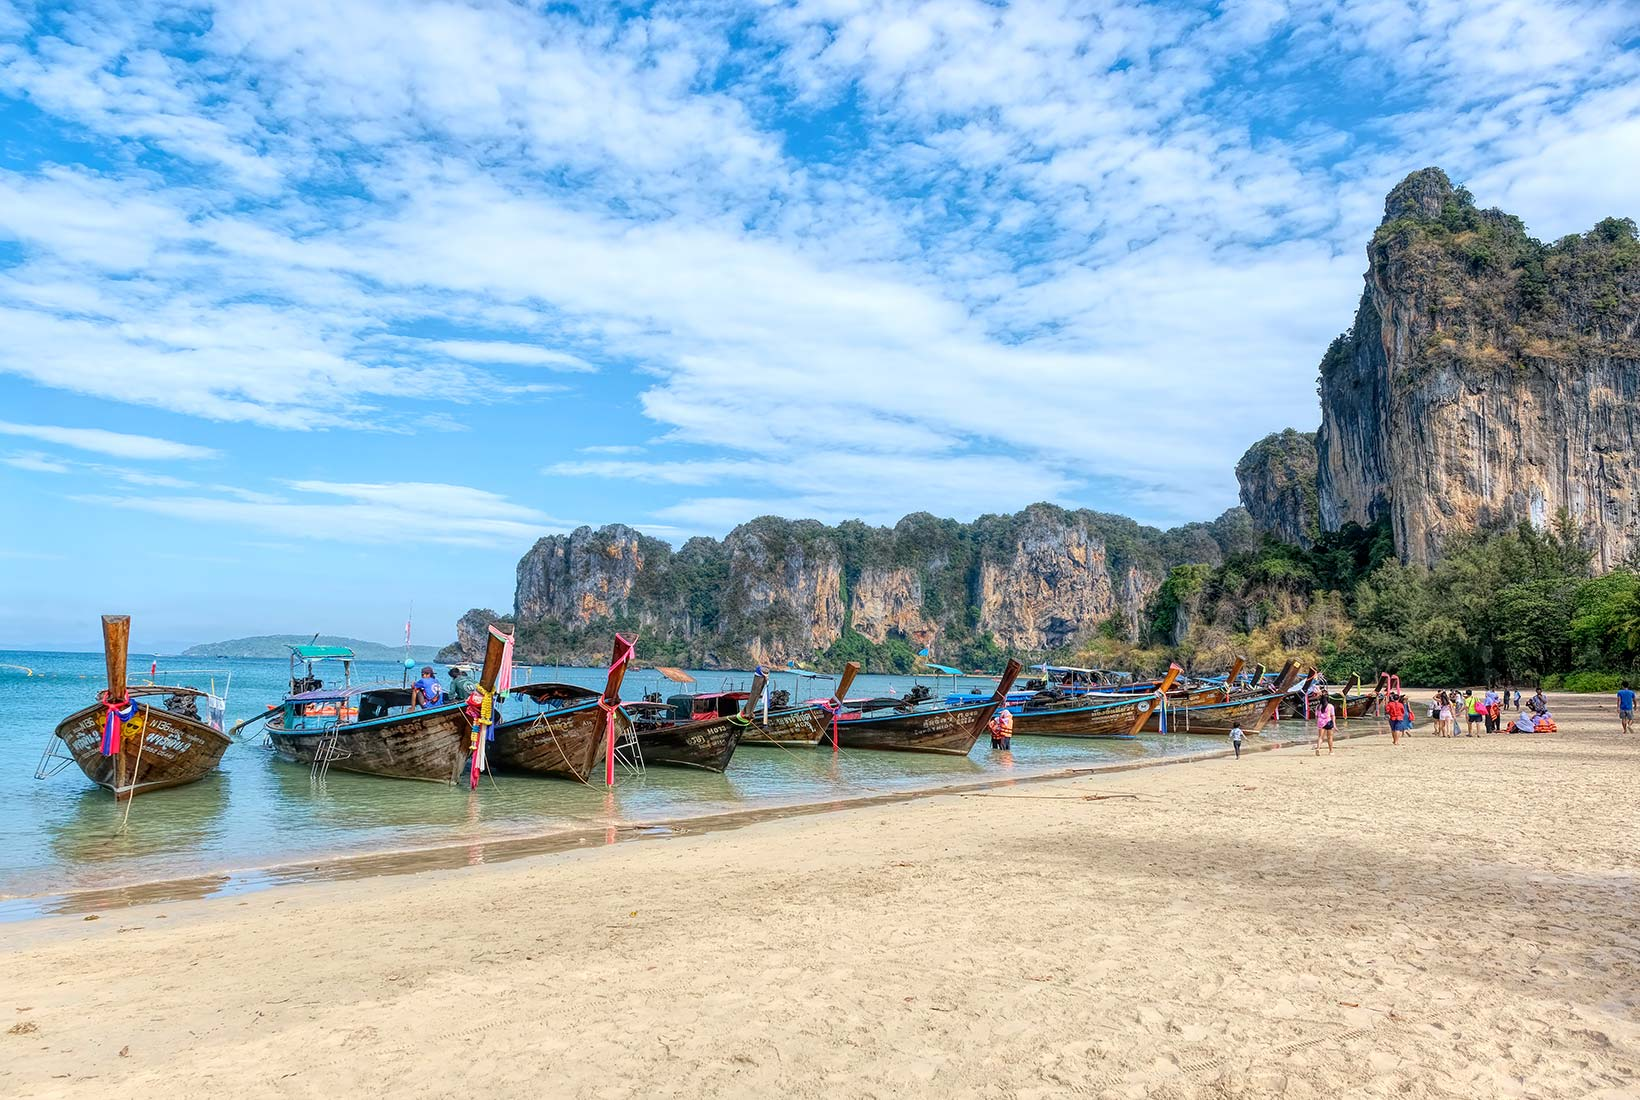 Longtail boats lined up, awaiting passengers on Railay Beach West